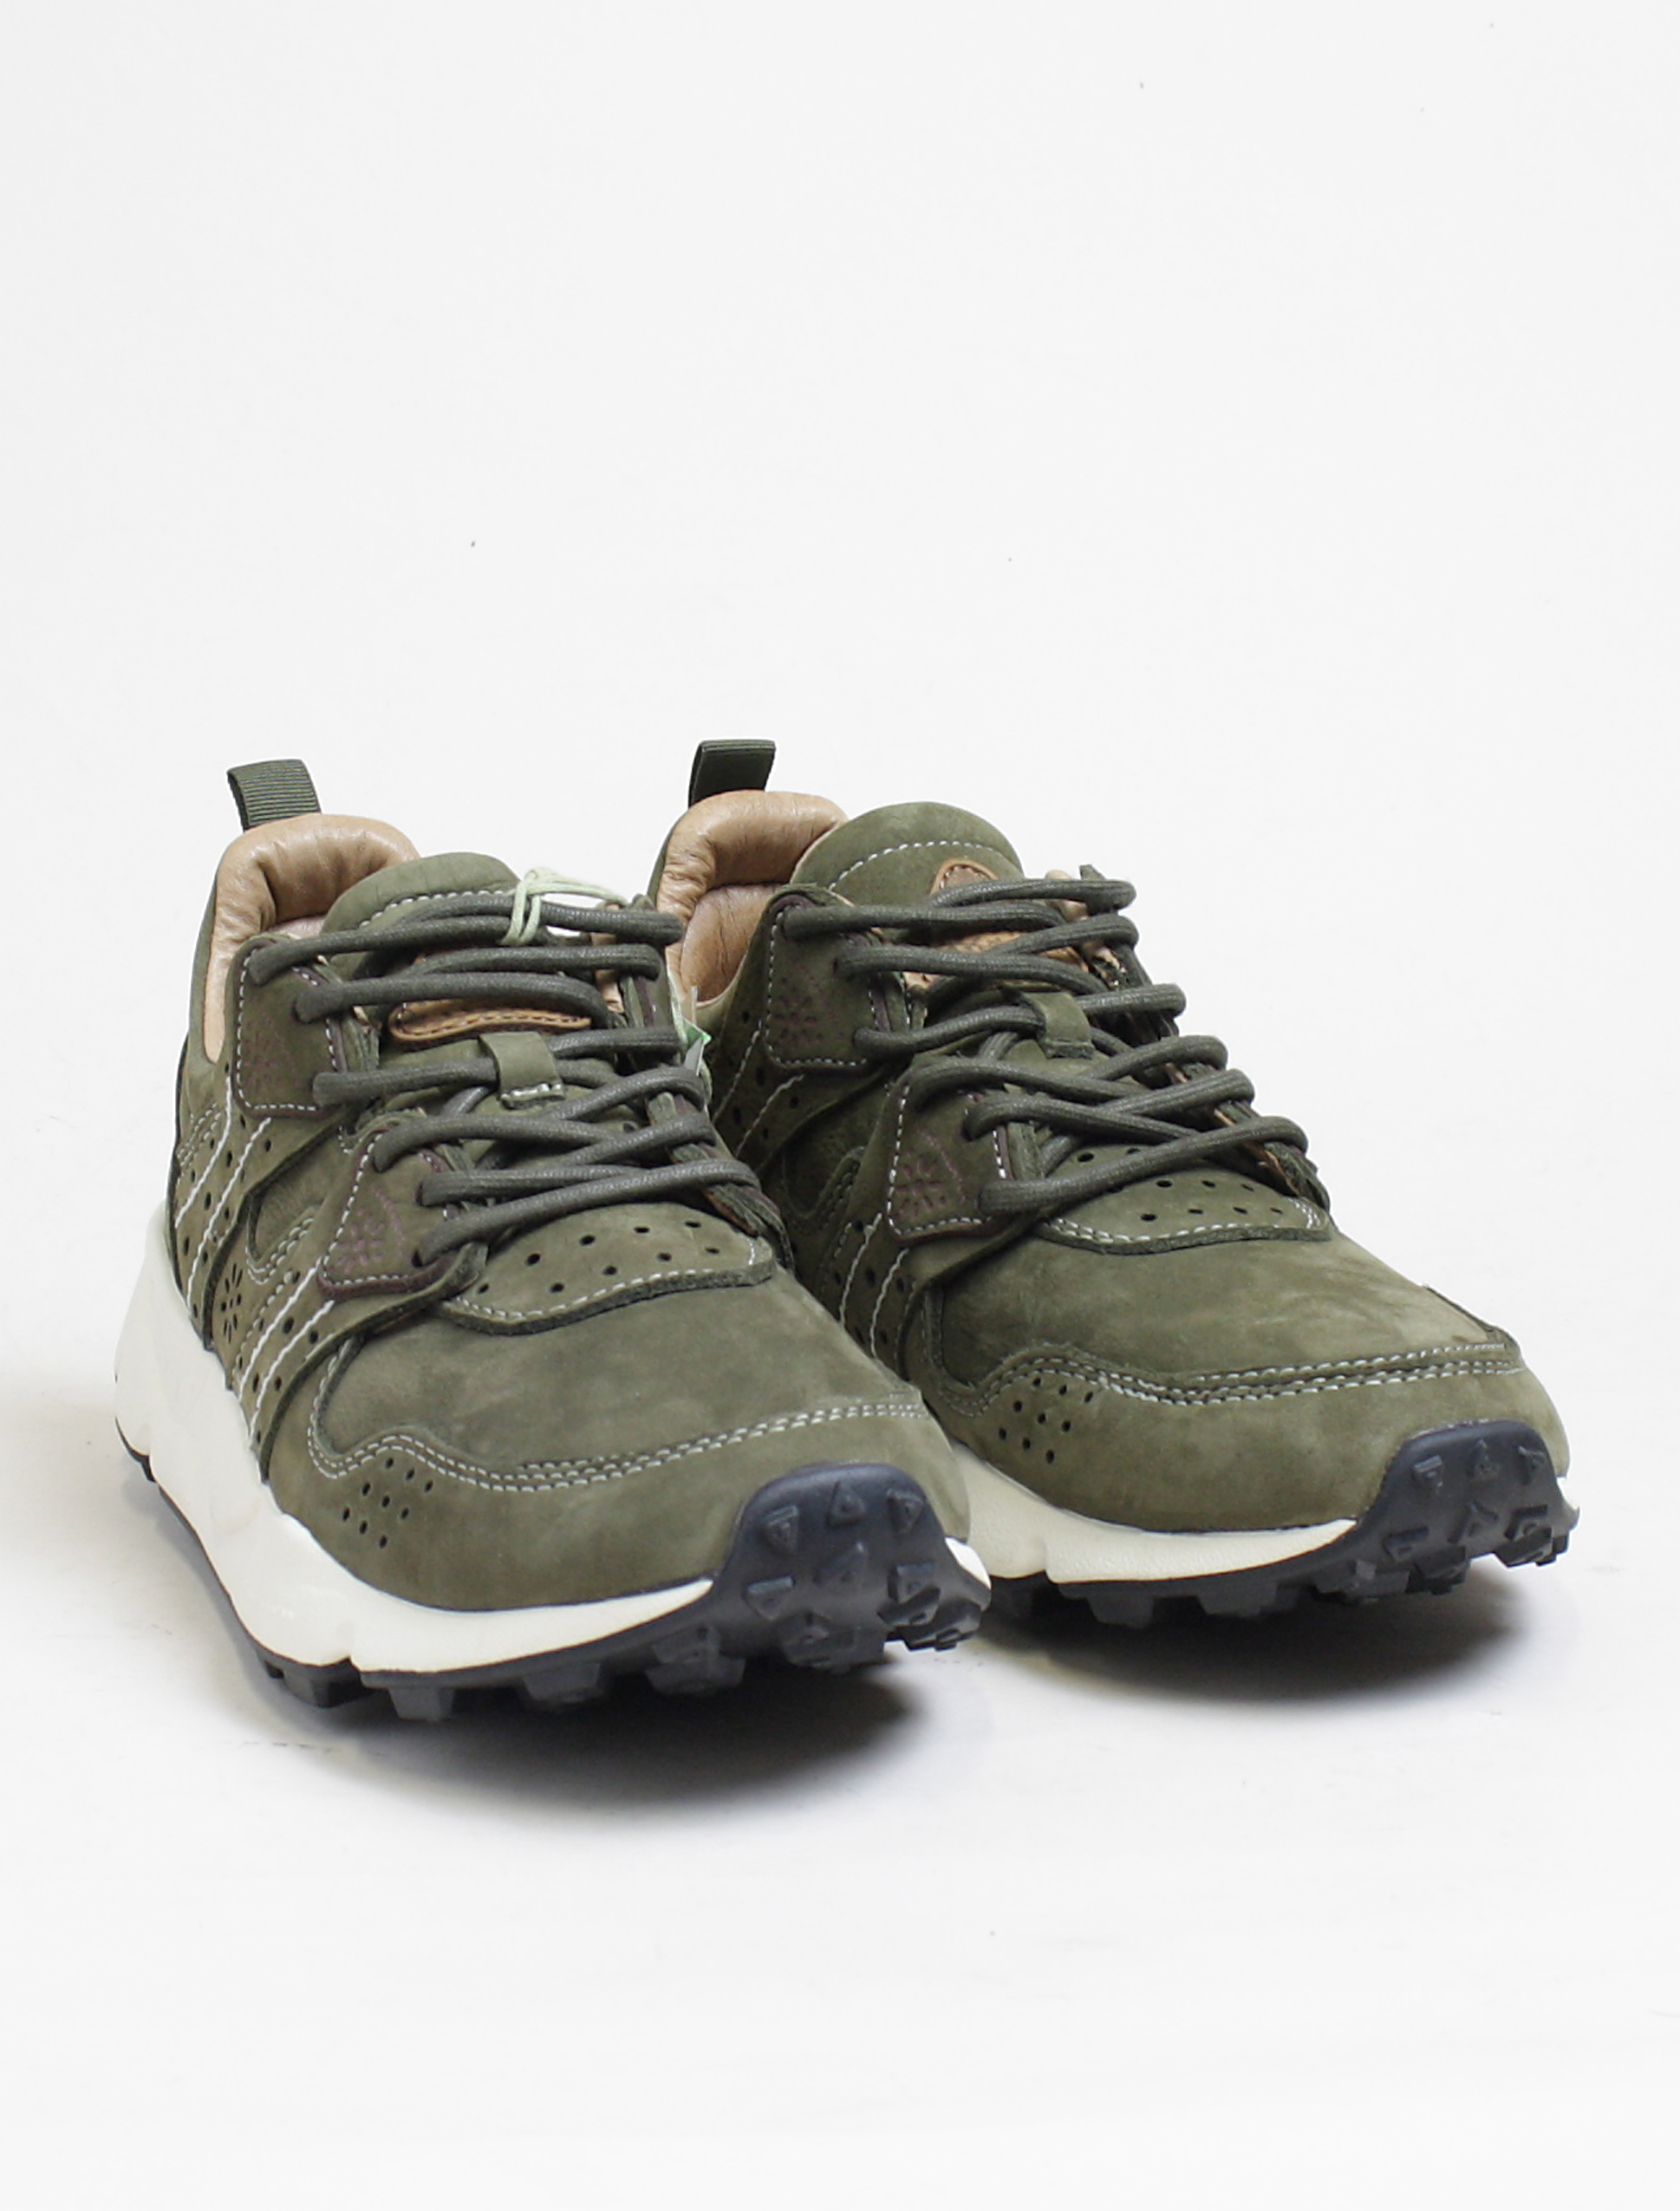 Flower Mountain sneakers Corax 2 nubuk militare paio